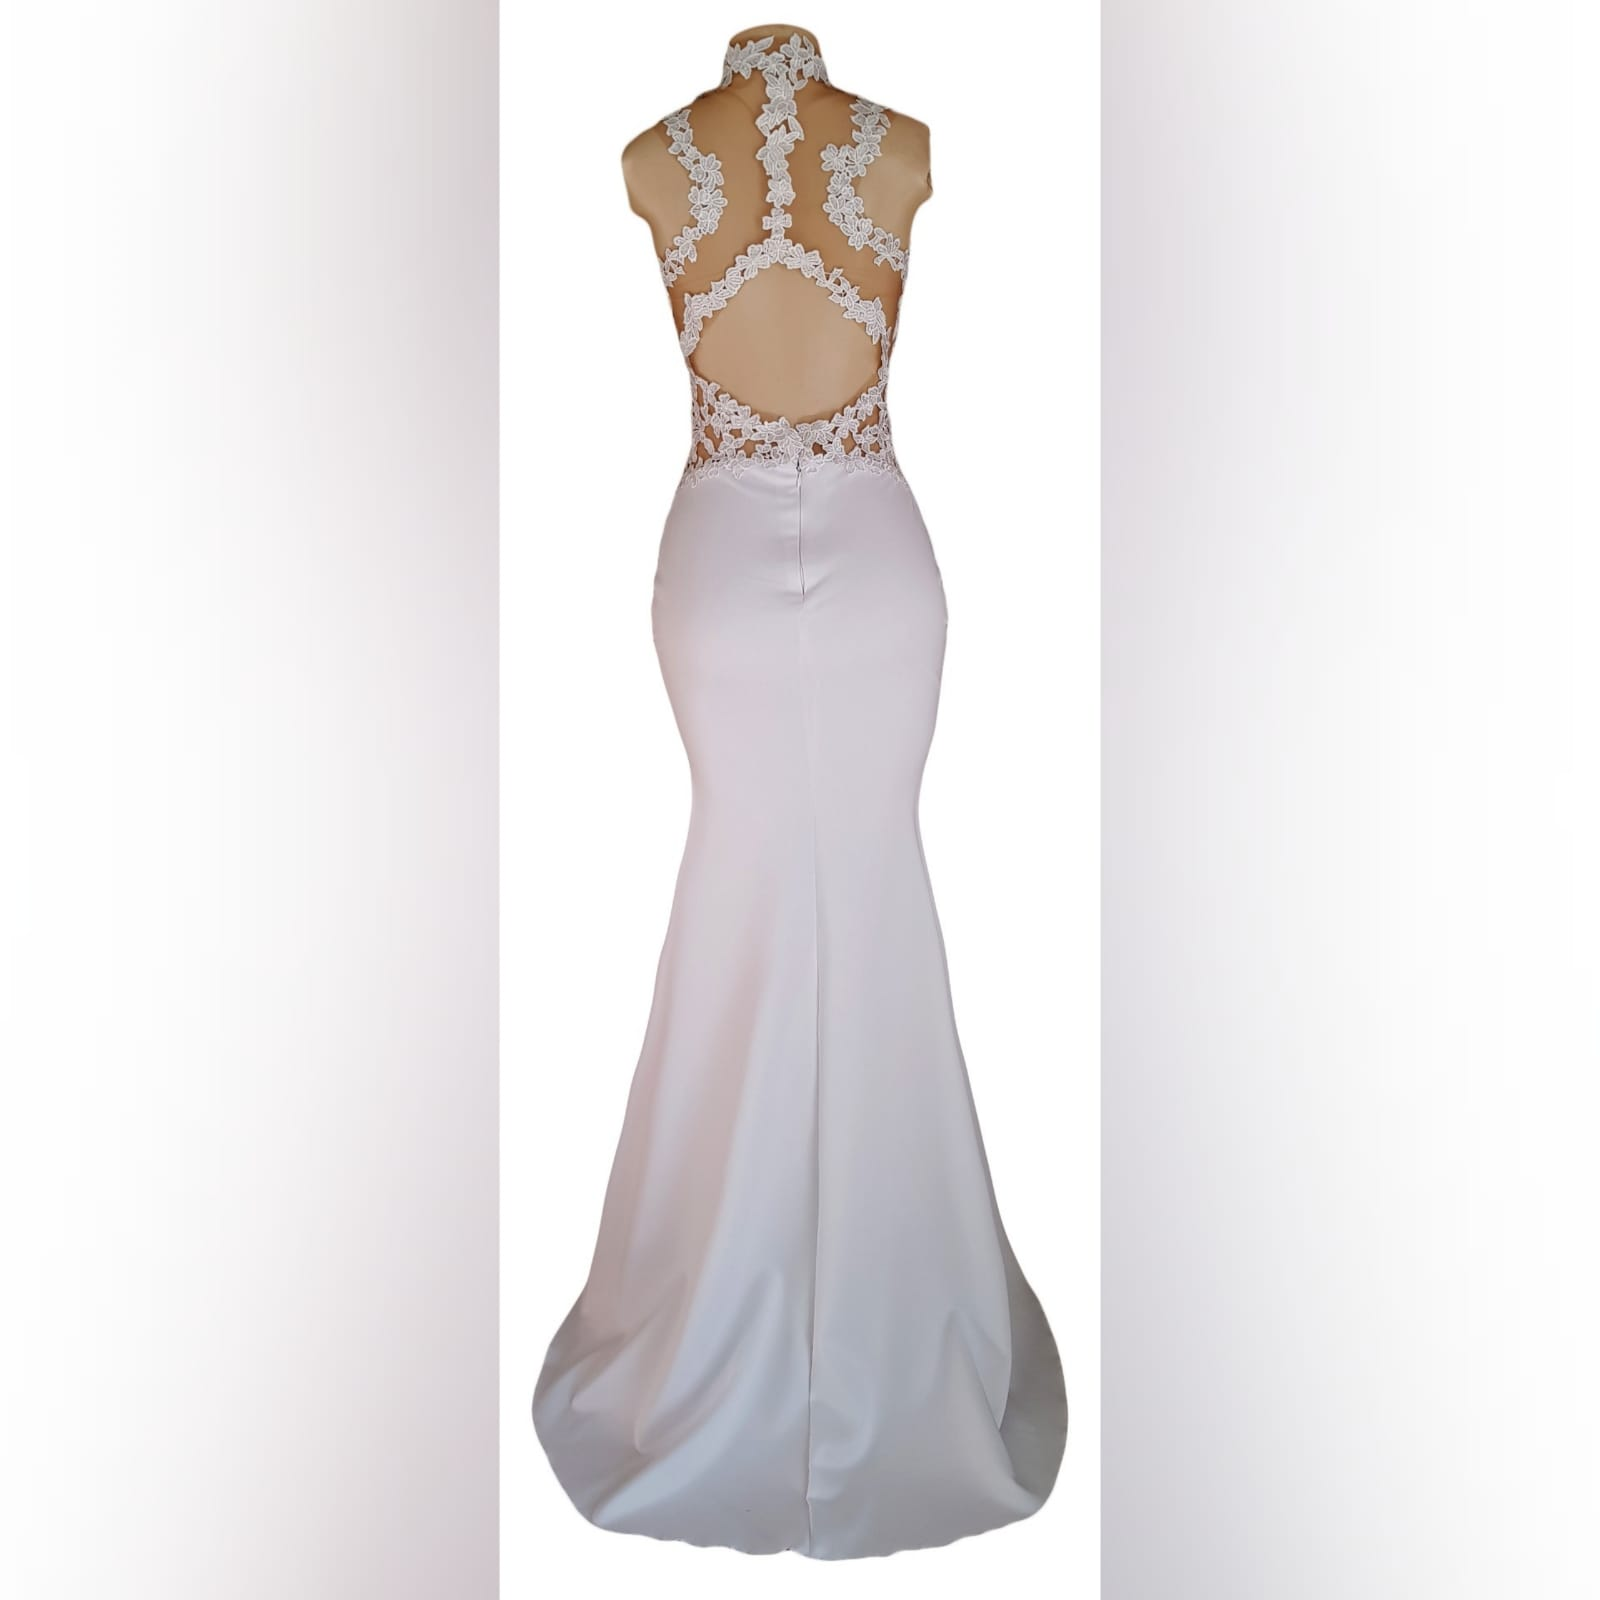 Choker white soft mermaid prom dress 4 white soft mermaid prom dress with a choker neckline and lace detail on the bodice, back & side tummy openings.